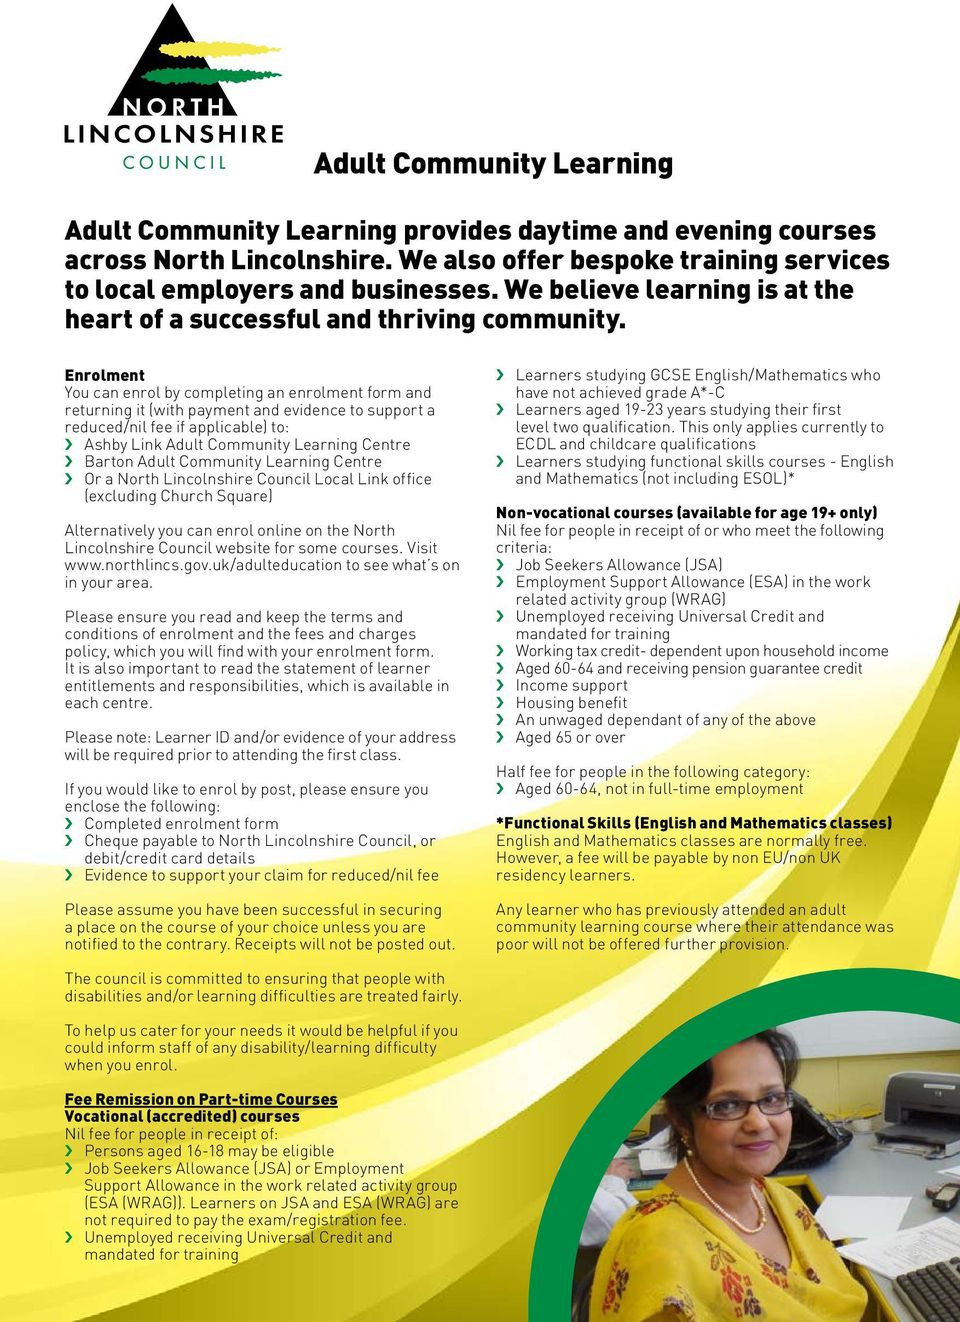 Enrolment You can enrol by completing an enrolment form and returning it (with payment and evidence to support a reduced/nil fee if applicable) to: Ashby Link Adult Community Learning Centre Barton